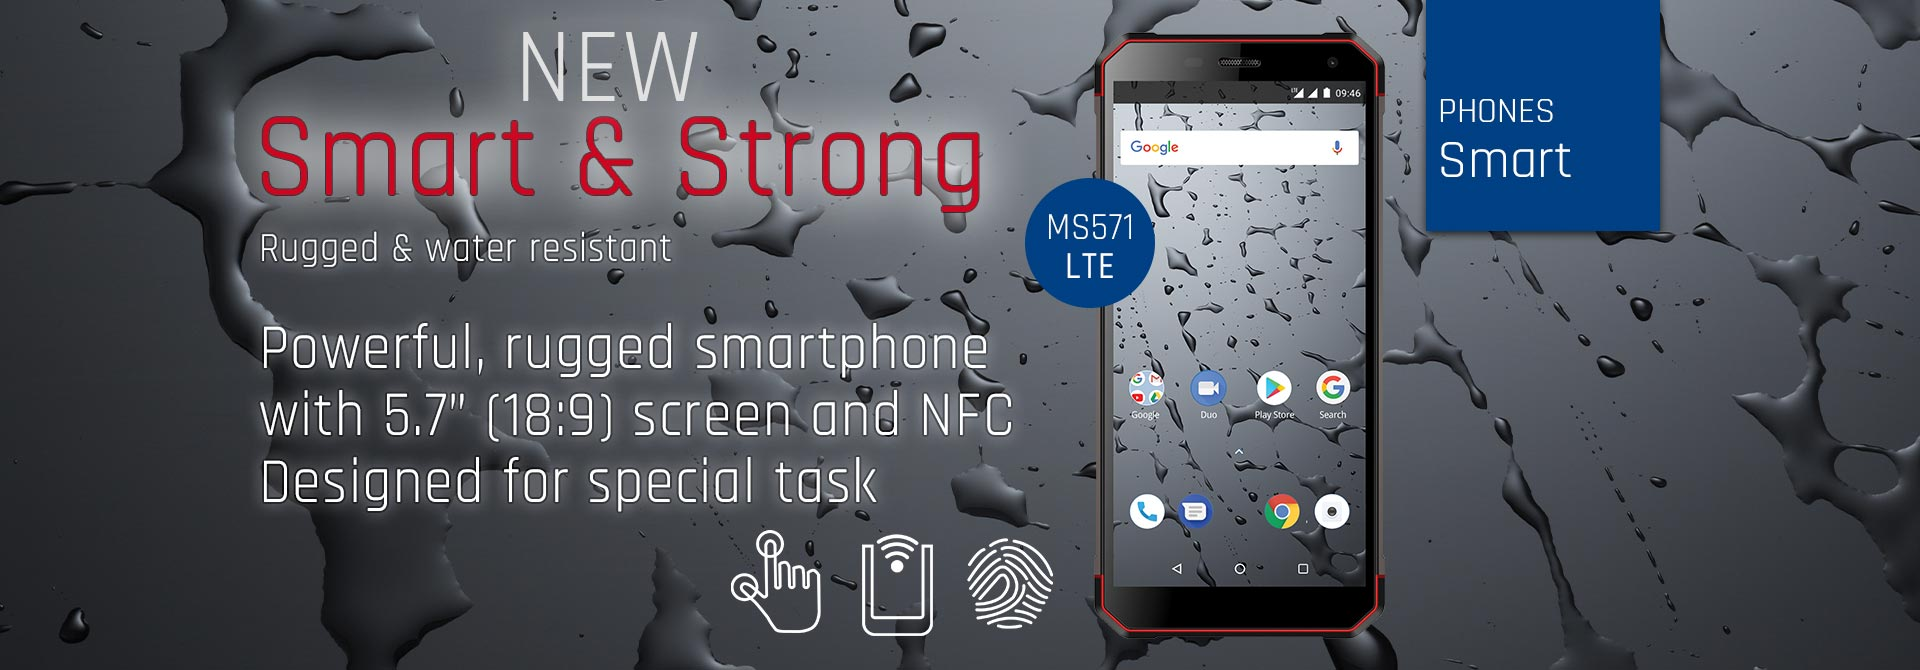 Nuovo Smart & Strong MS571 LTE